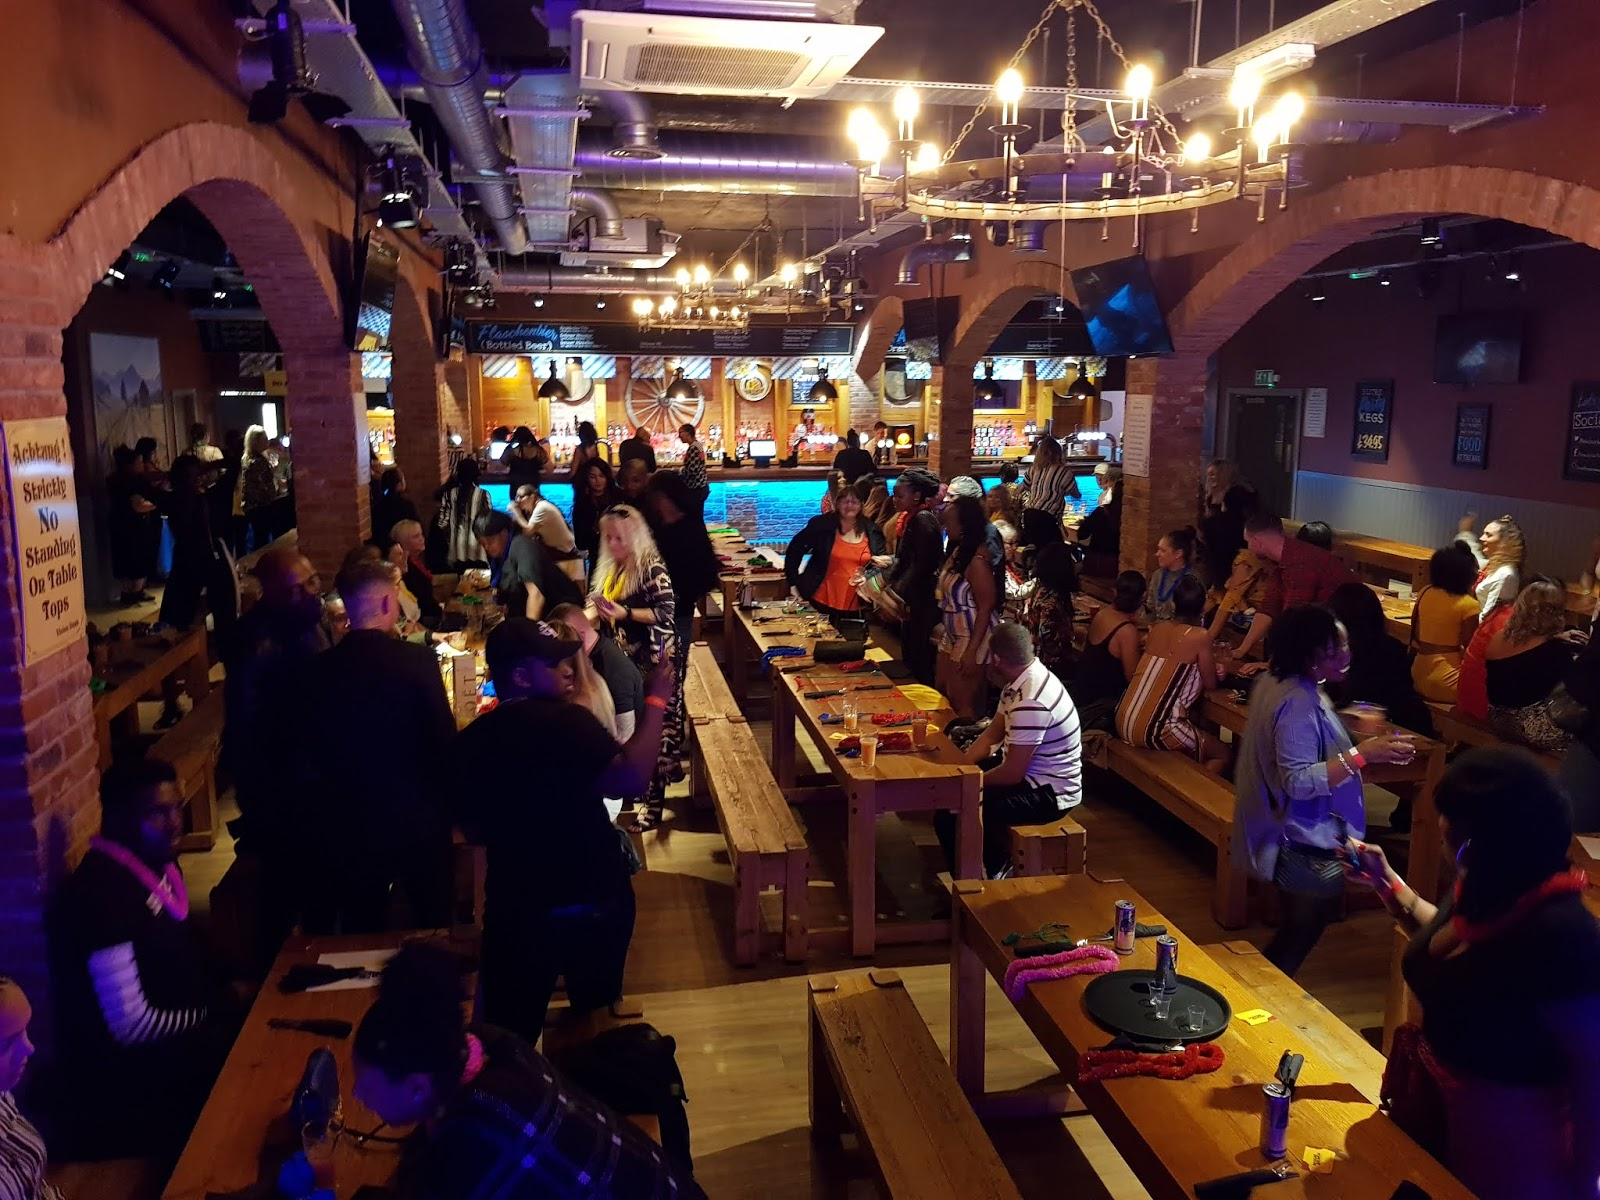 the Reggae Brunch venue at Birmingham Bierkeller with dancing attendees